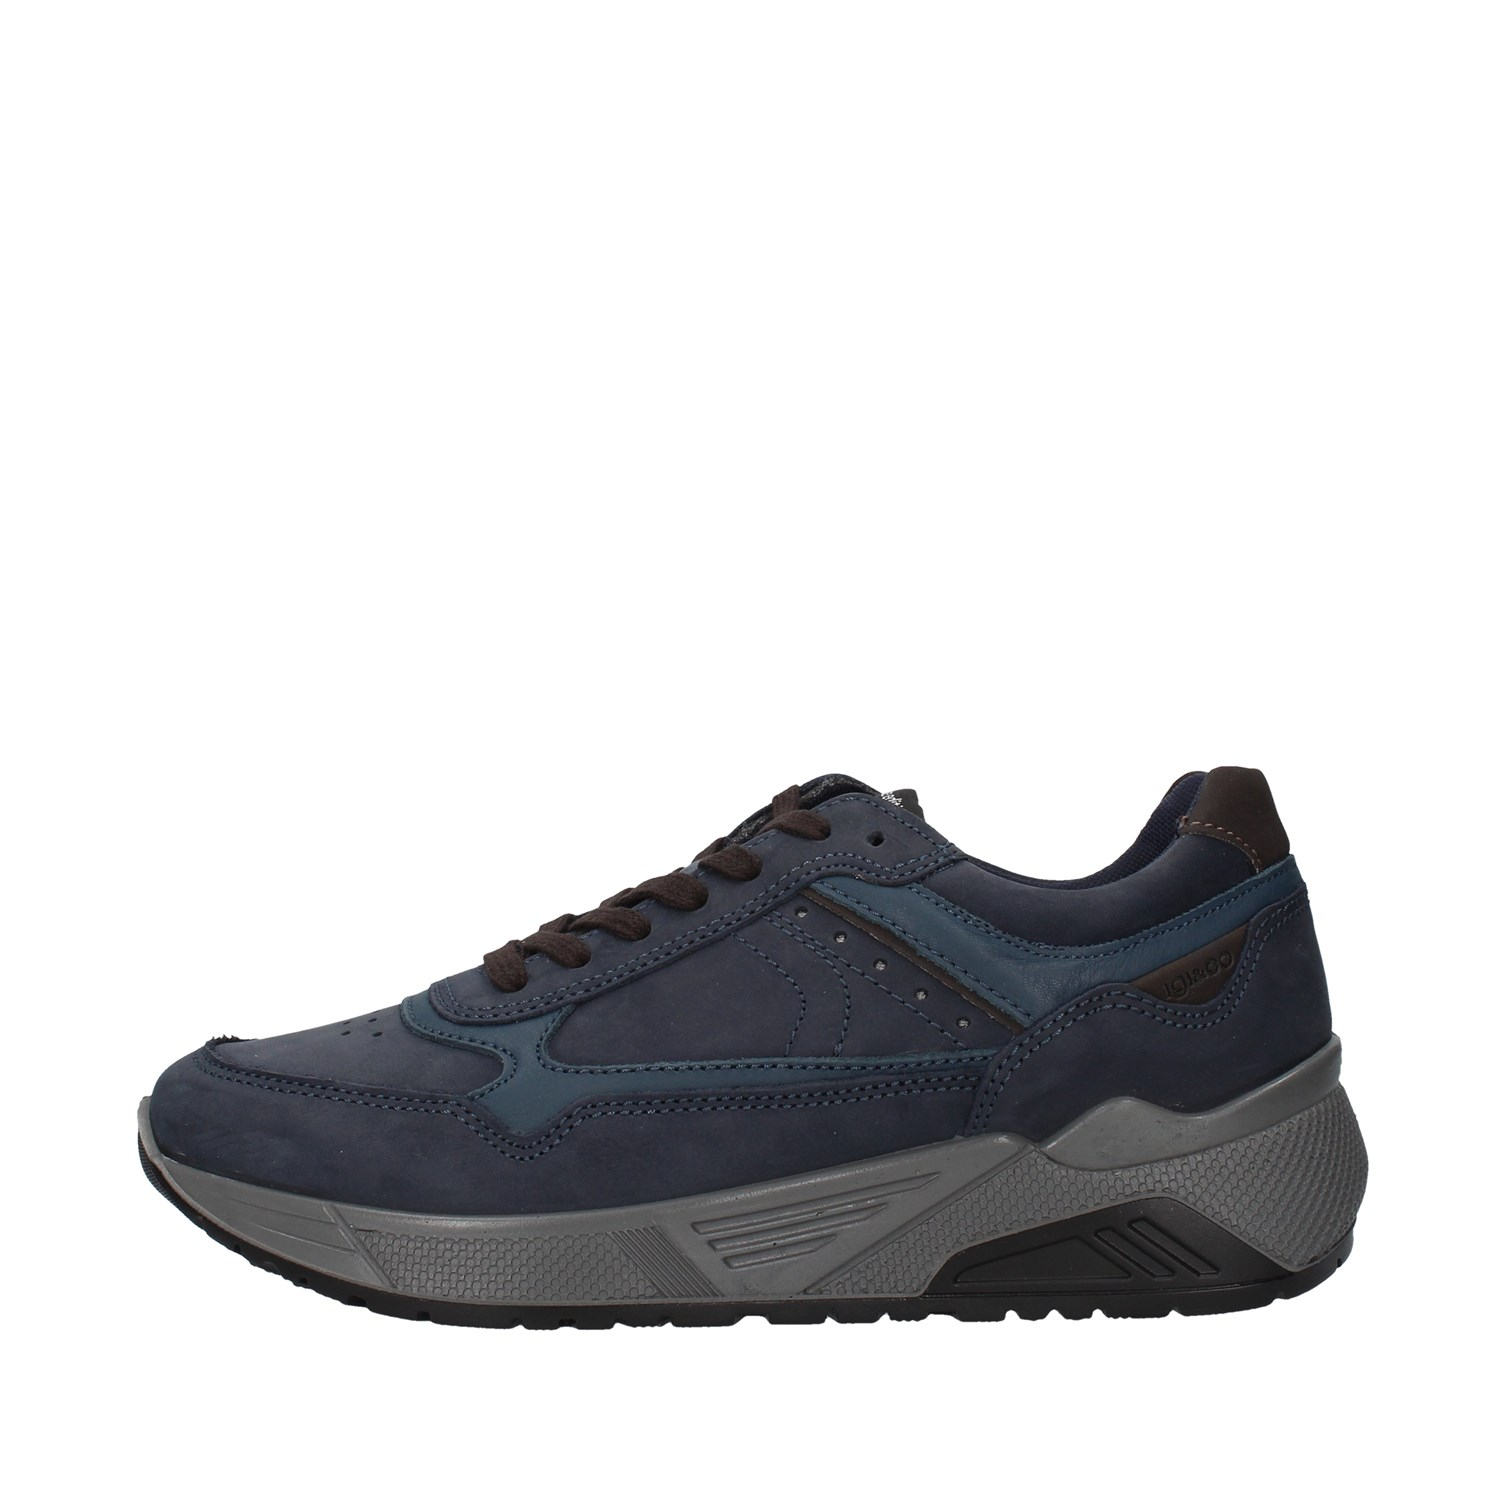 Igi&co Shoes Man Sneakers BLUE 4136322